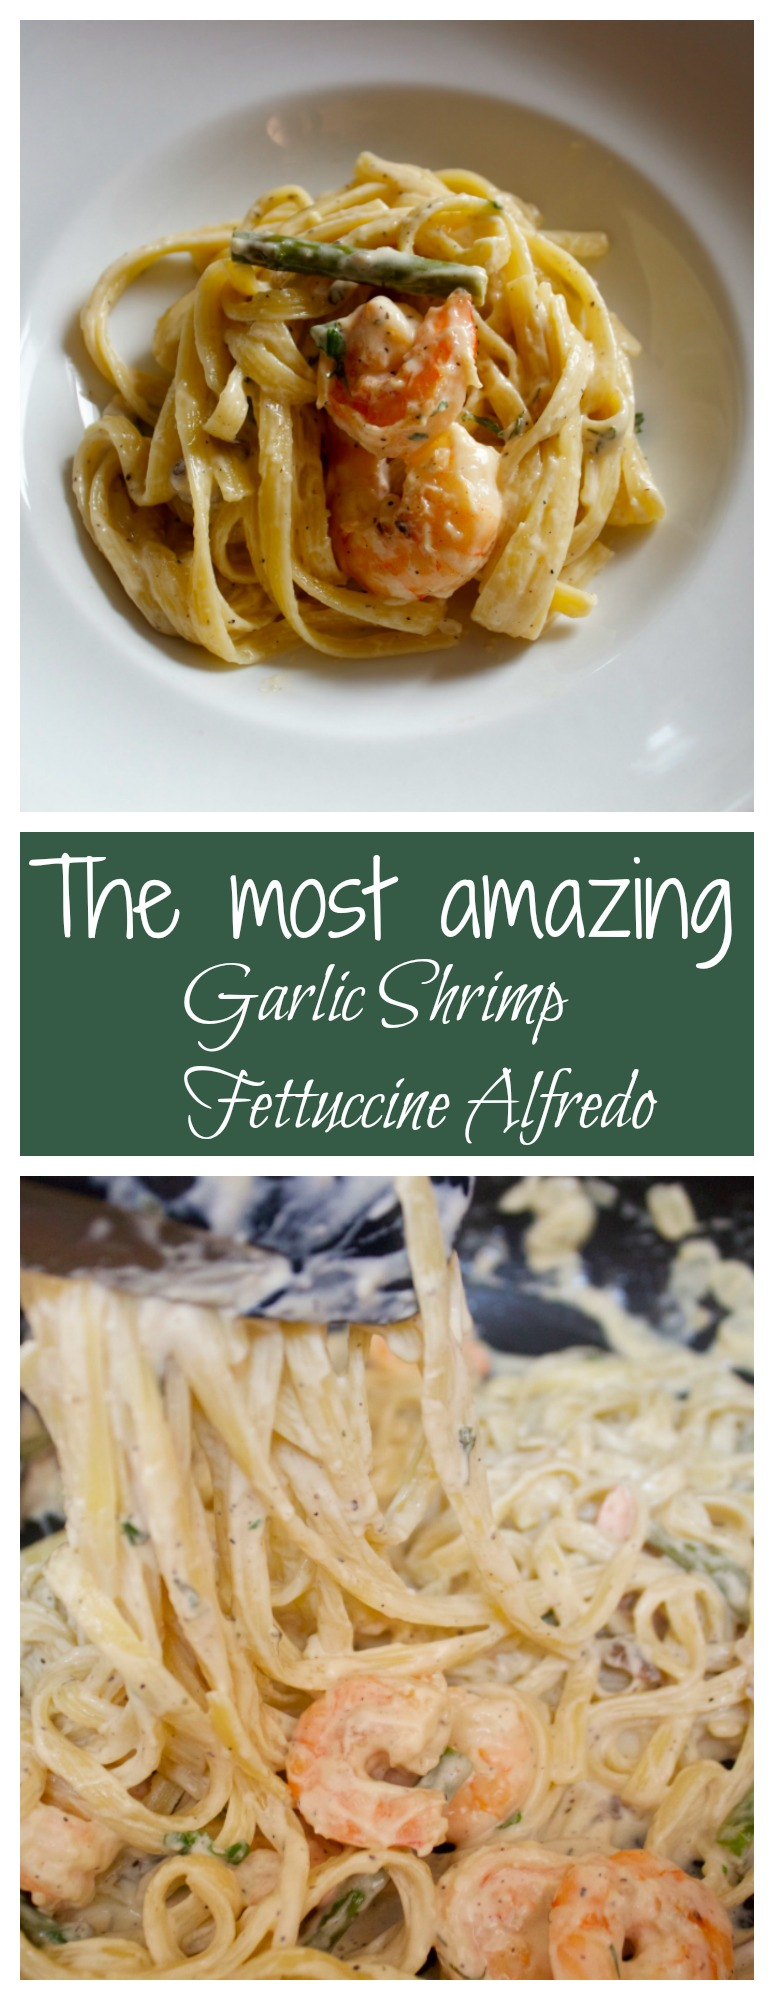 This is the most amazing garlic shrimp fettuccine alfredo from Cooked by Julie!